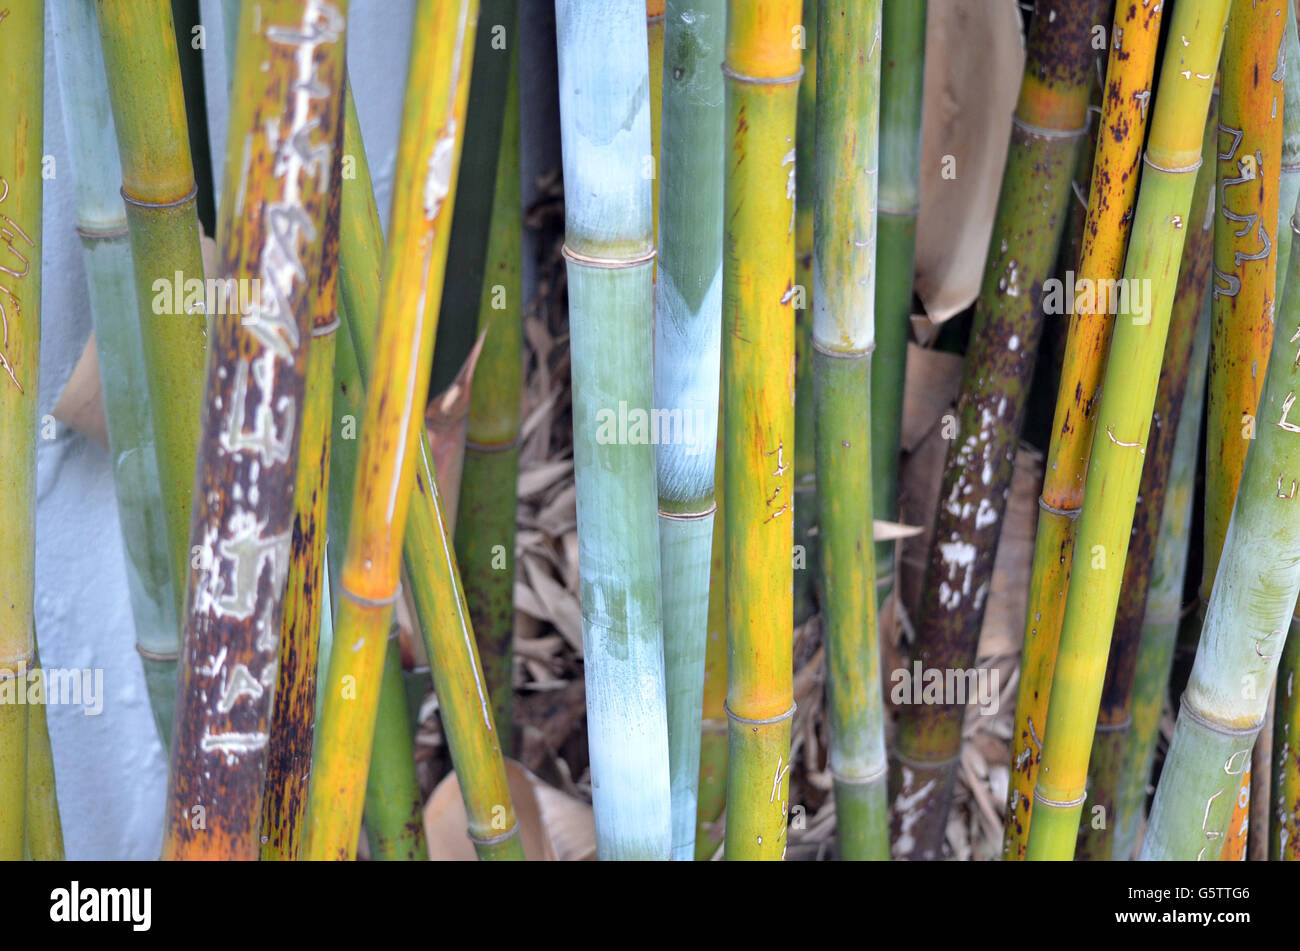 Stand of colourful Bamboo stems - Stock Image